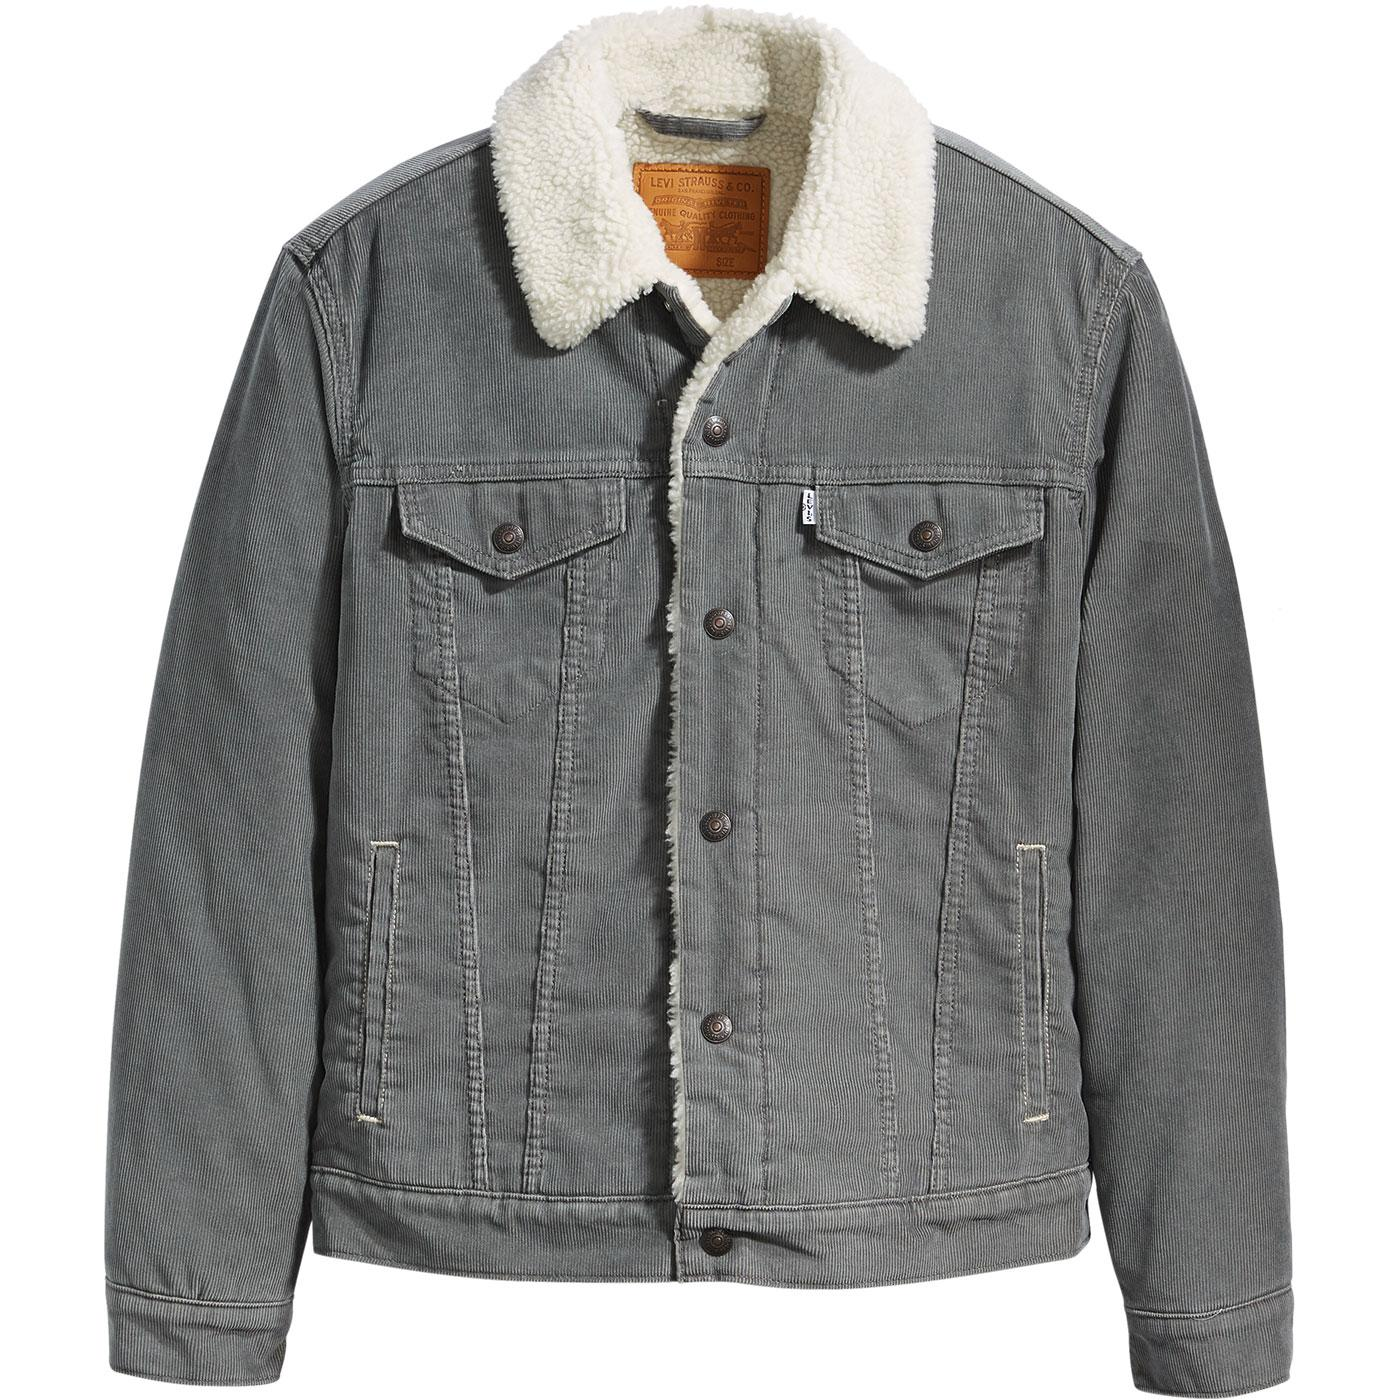 LEVI'S Type 3 Retro Sherpa Cord Trucker Jacket (P)